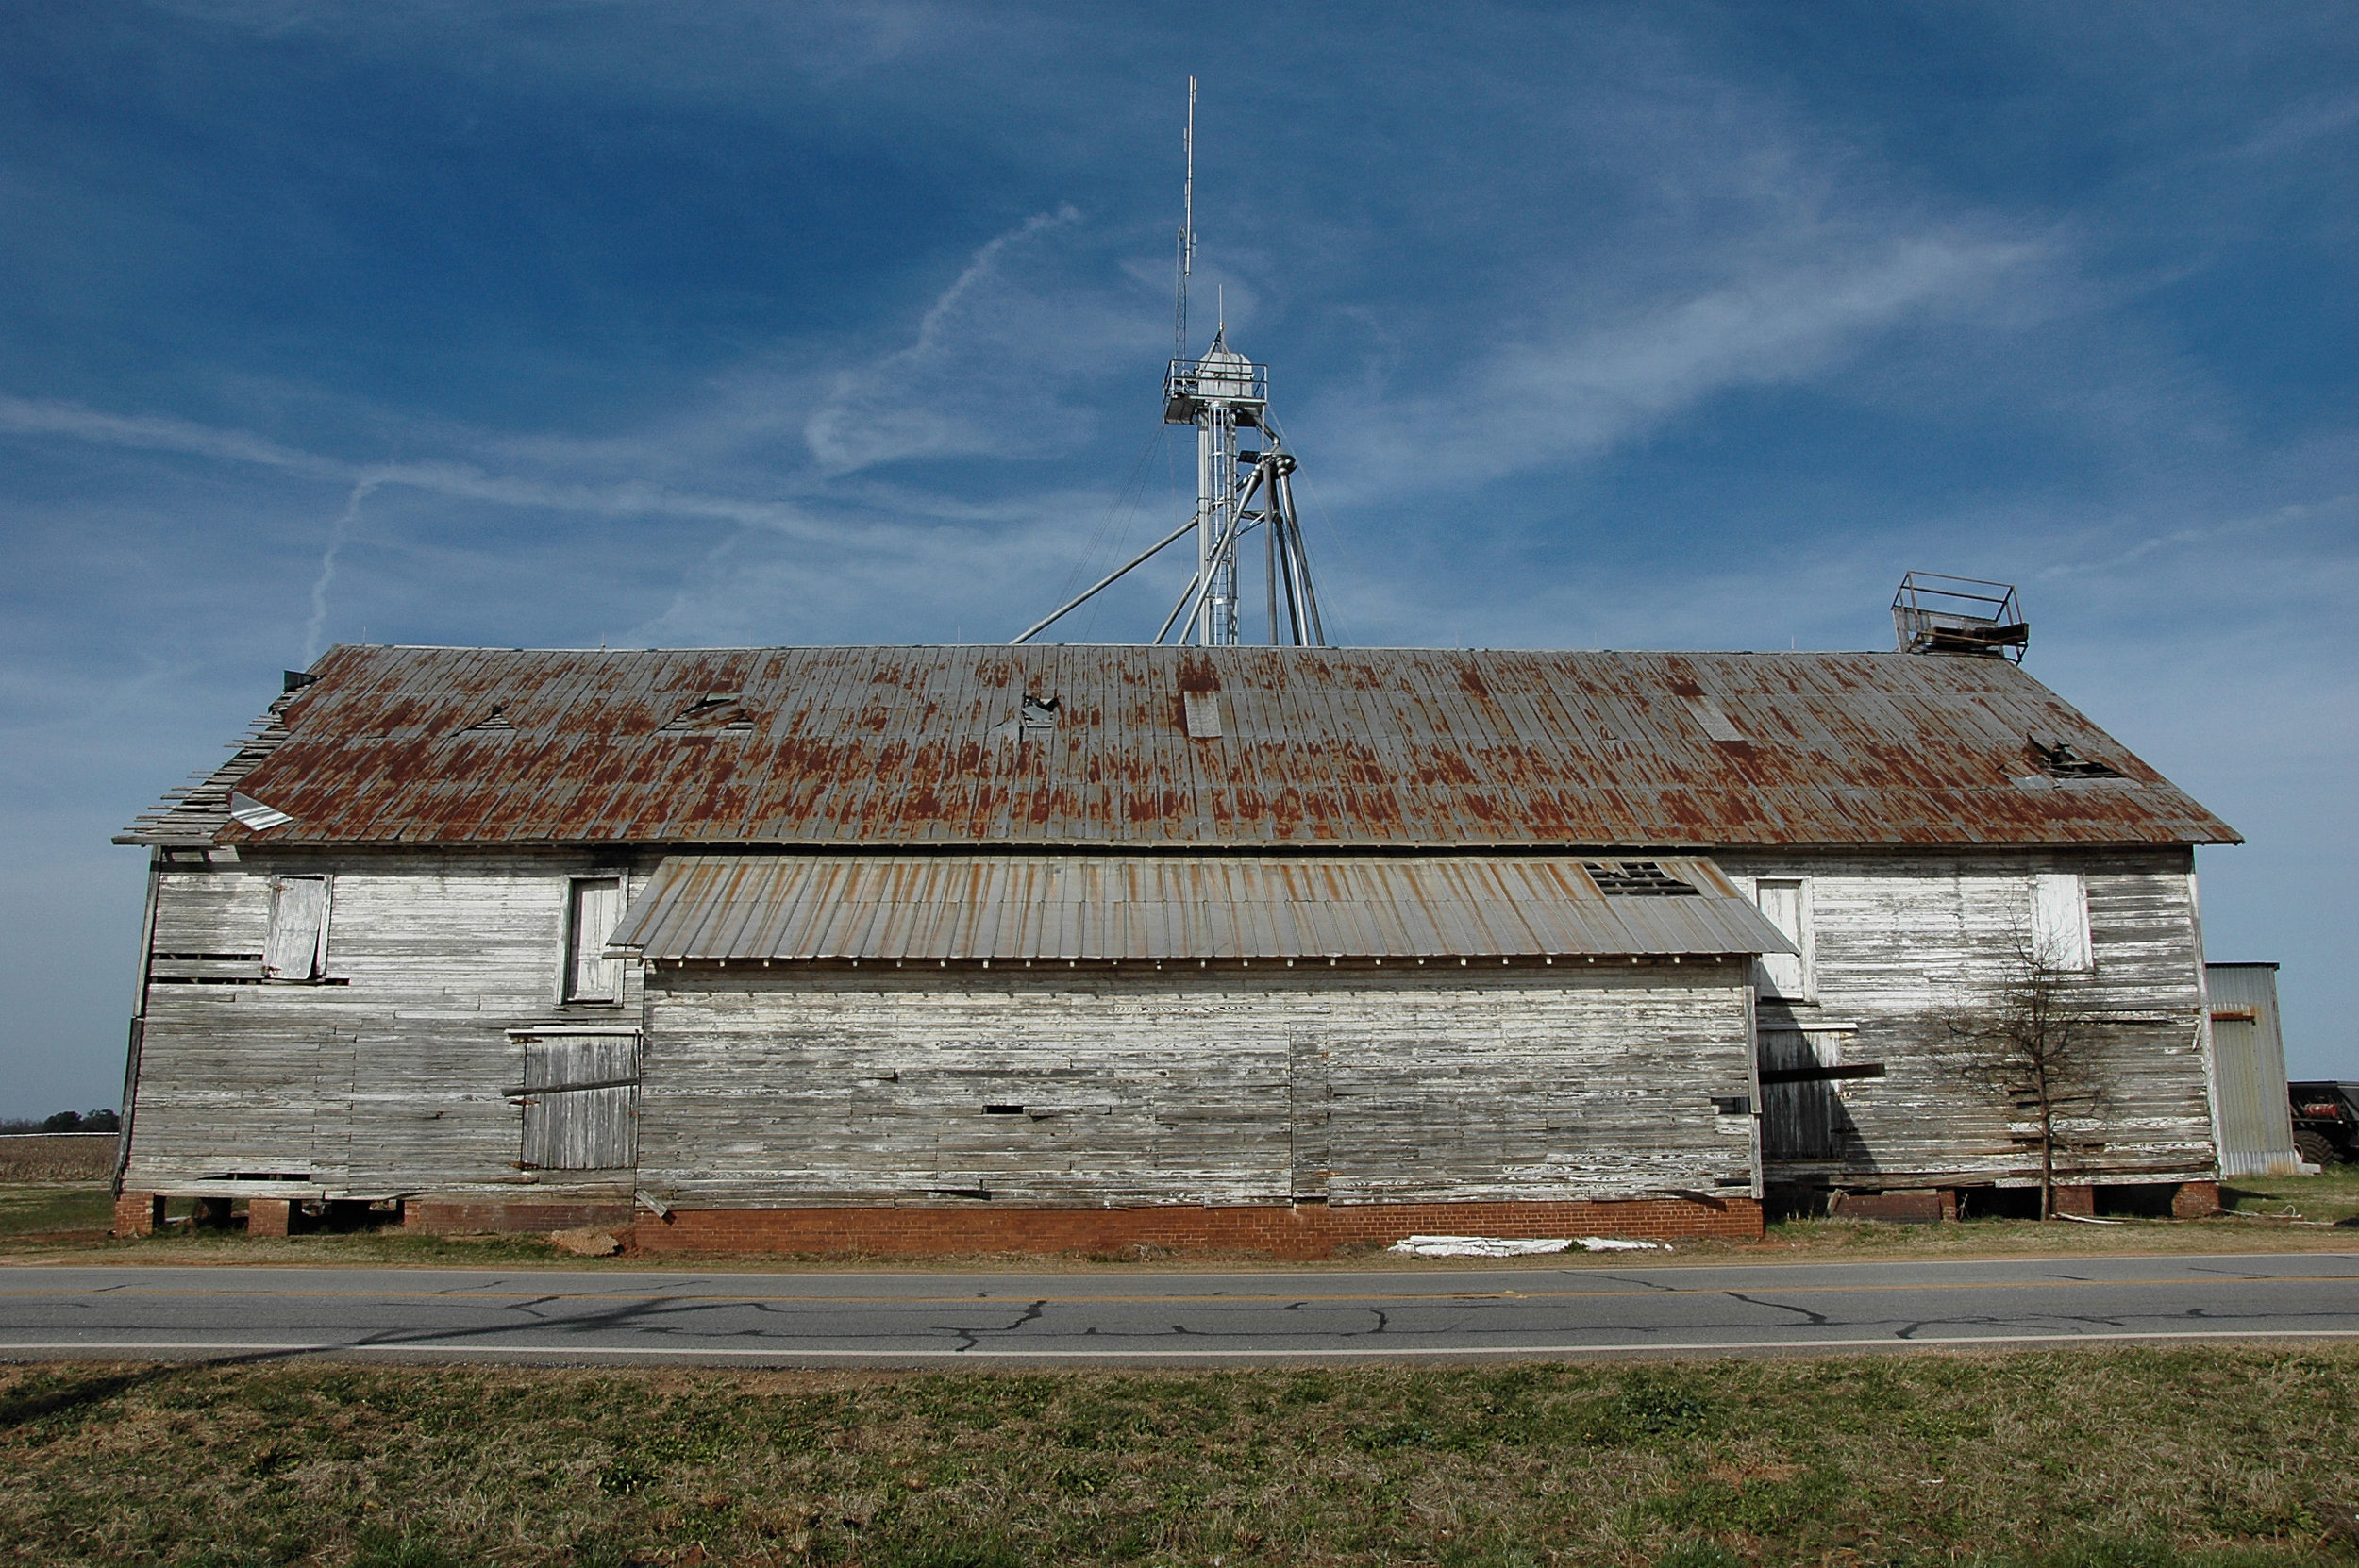 miami-valley-ga-peach-county-packing-shed-barn-large-rusted-tin-roof-southern-rural-southern-photo-copyright-brian-brown-vanishing-south-georgia.jpg